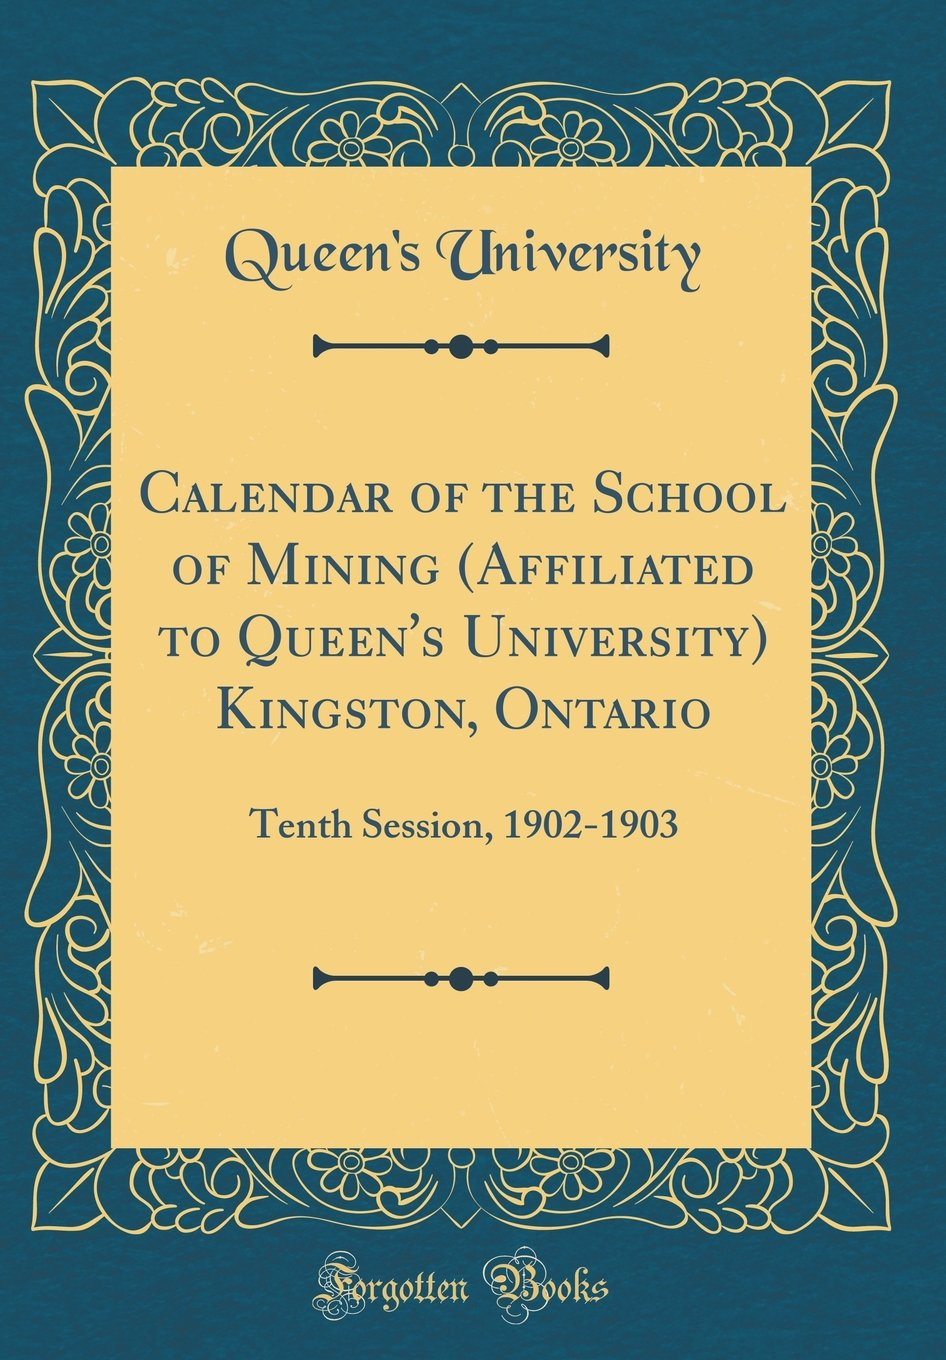 Calendar of the School of Mining (Affiliated to Queen's